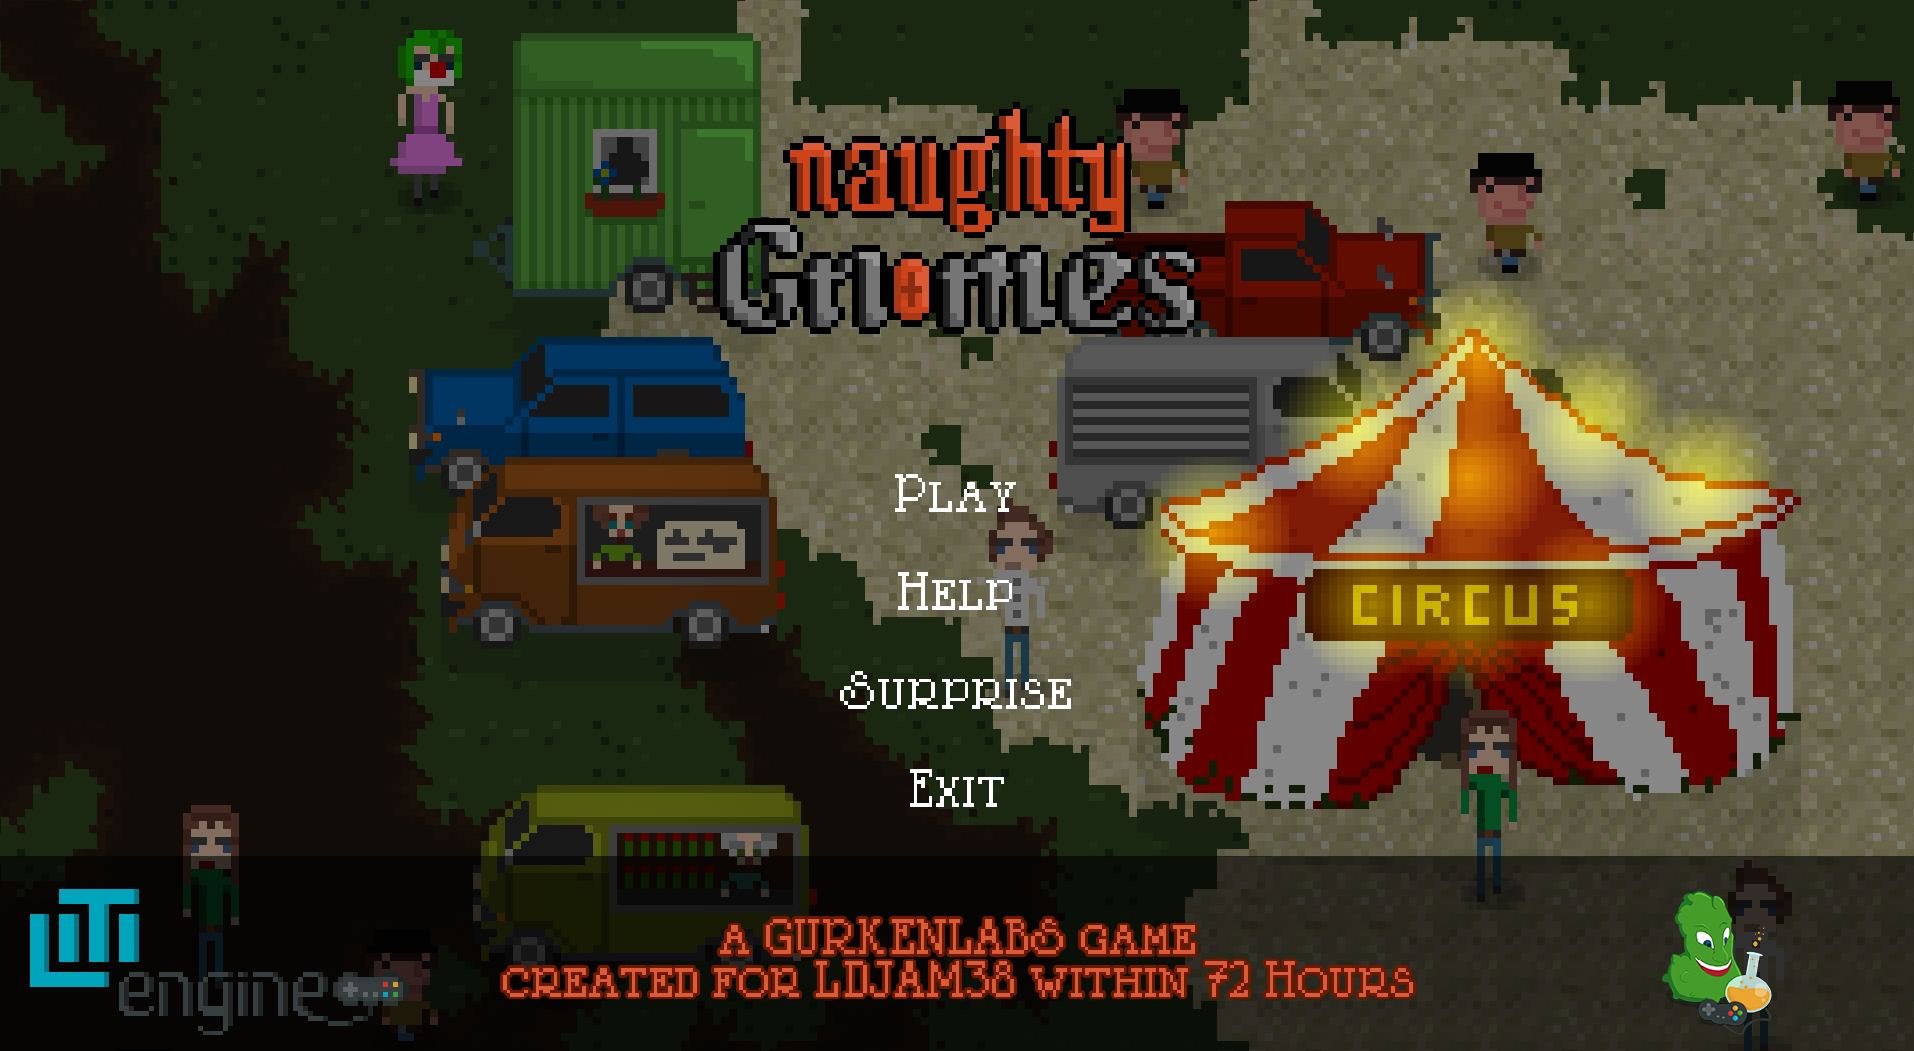 """Naughty Gnomes Screenshot Menu"" title=""Naughty Gnomes Screenshot Menu"""